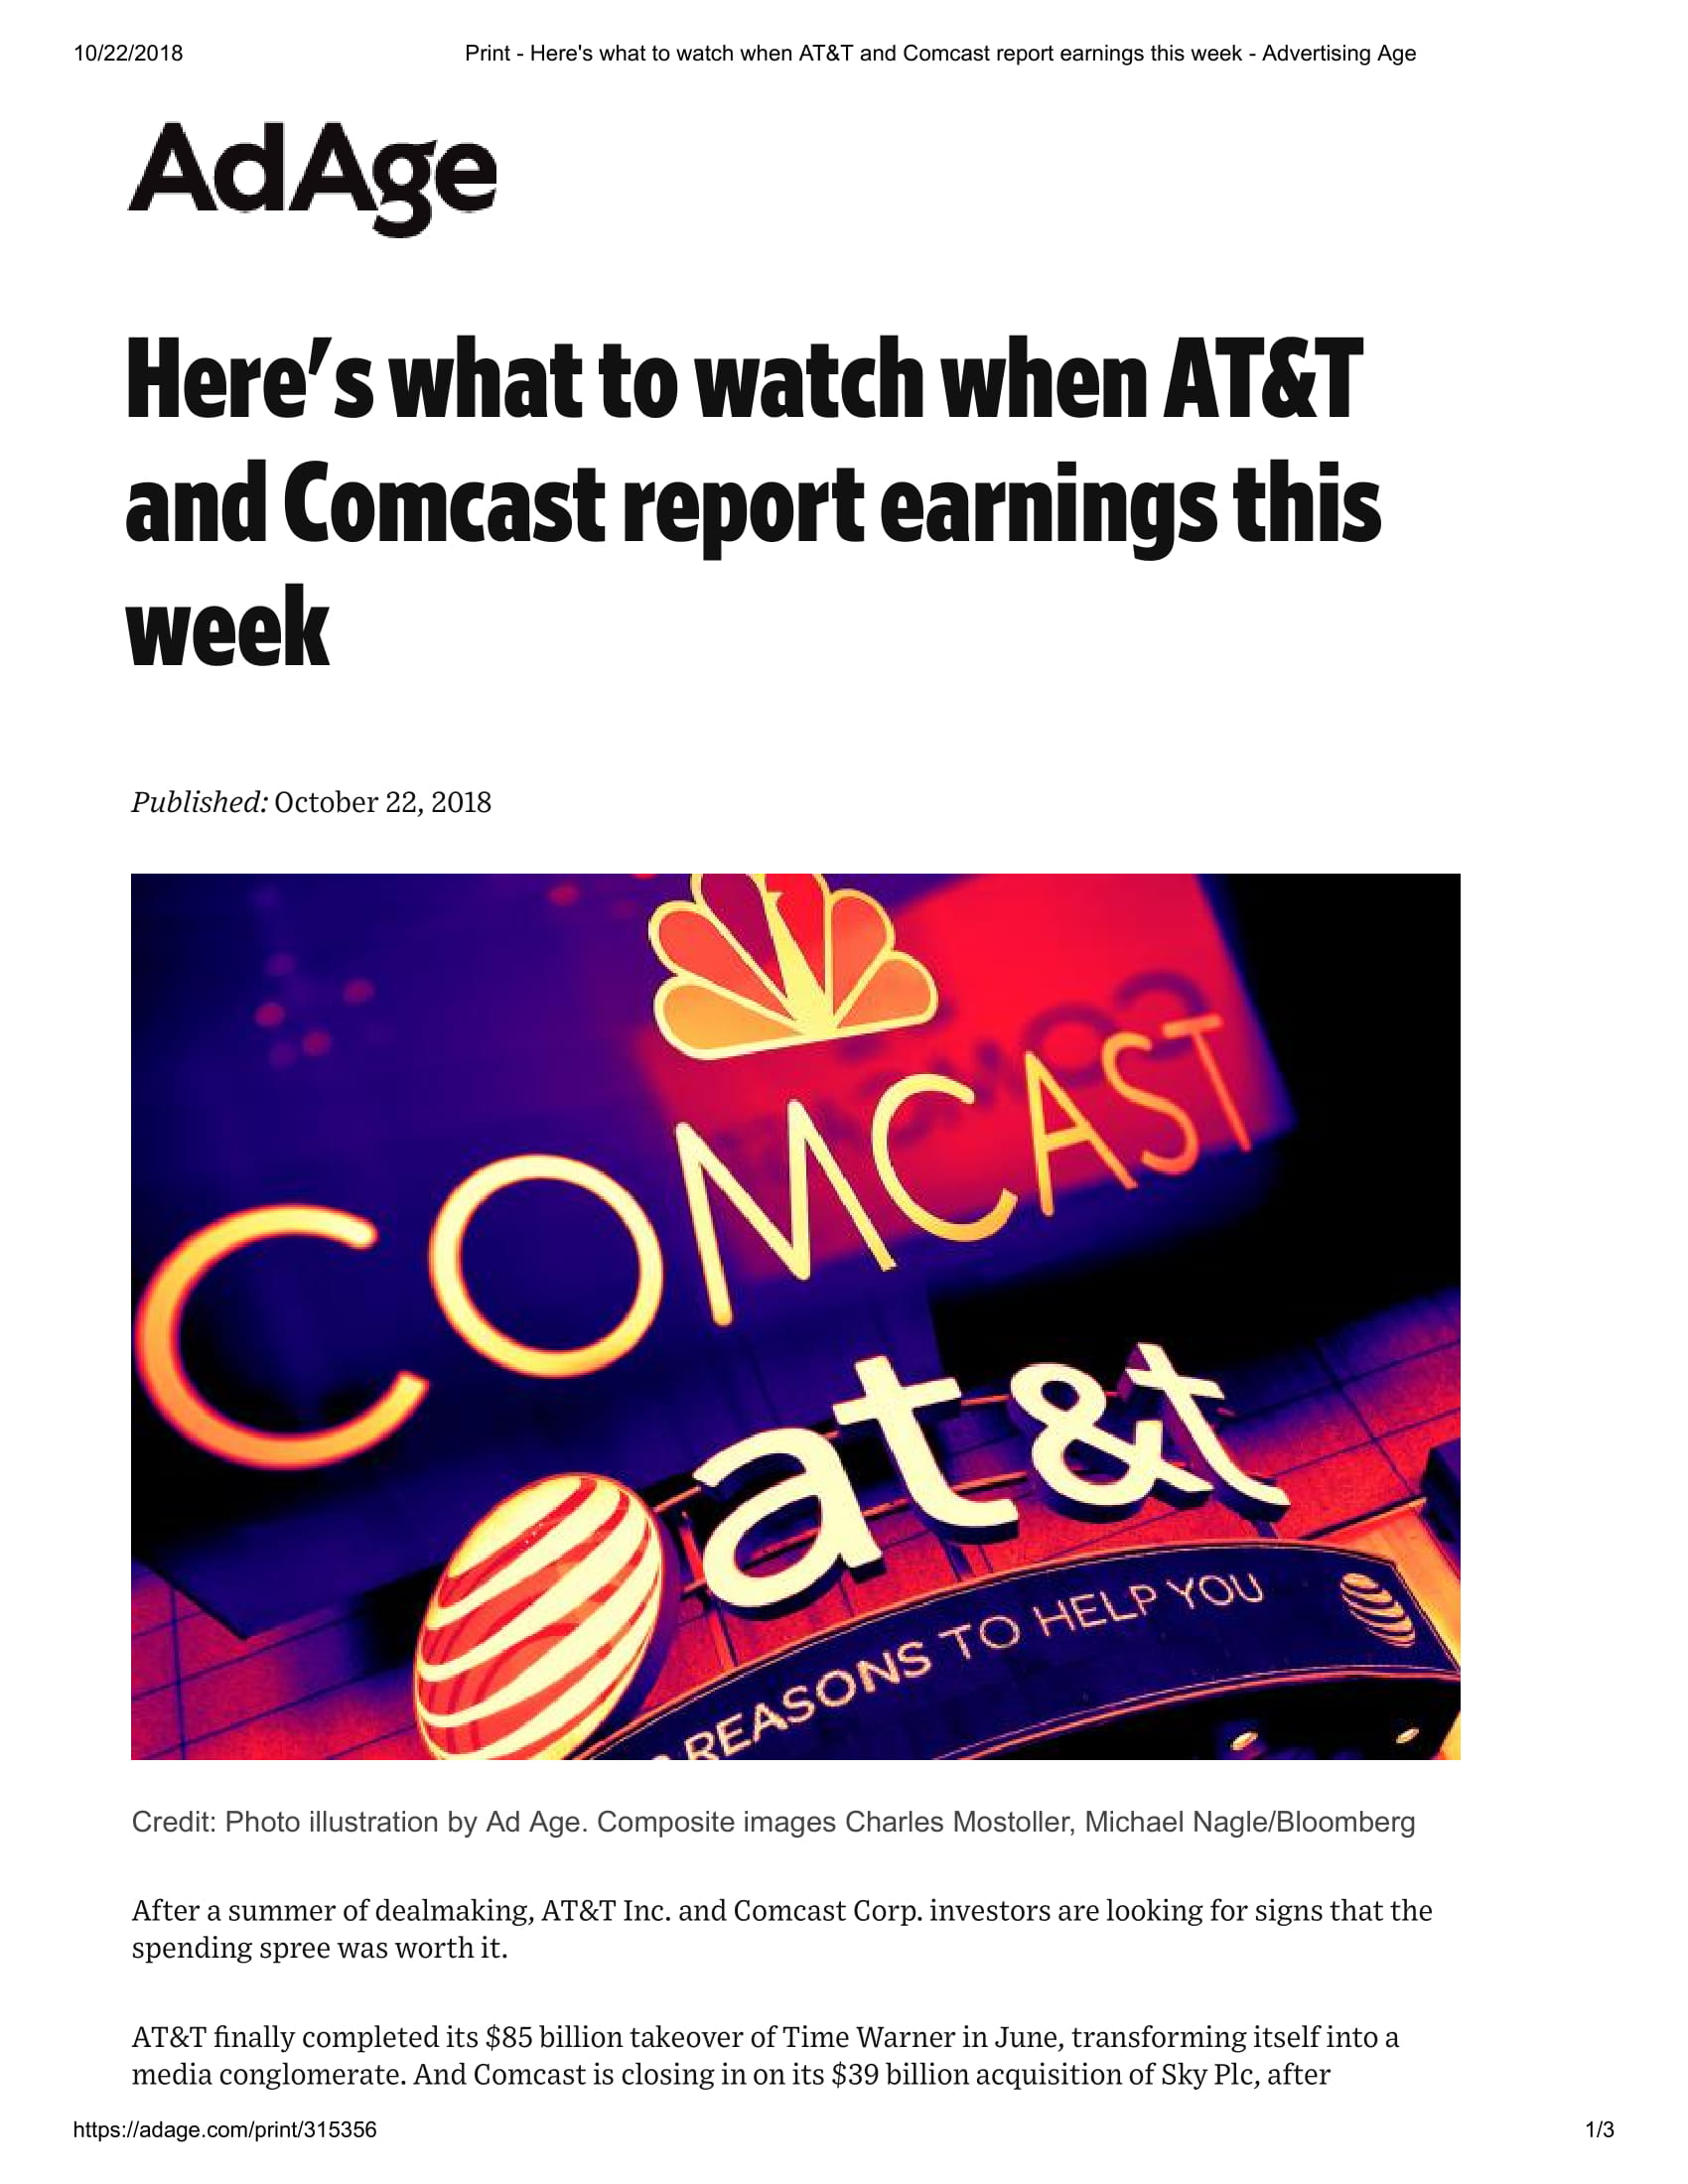 Print - Here's what to watch when AT&T and Comcast report earnings this week - Advertising Age-1.jpg